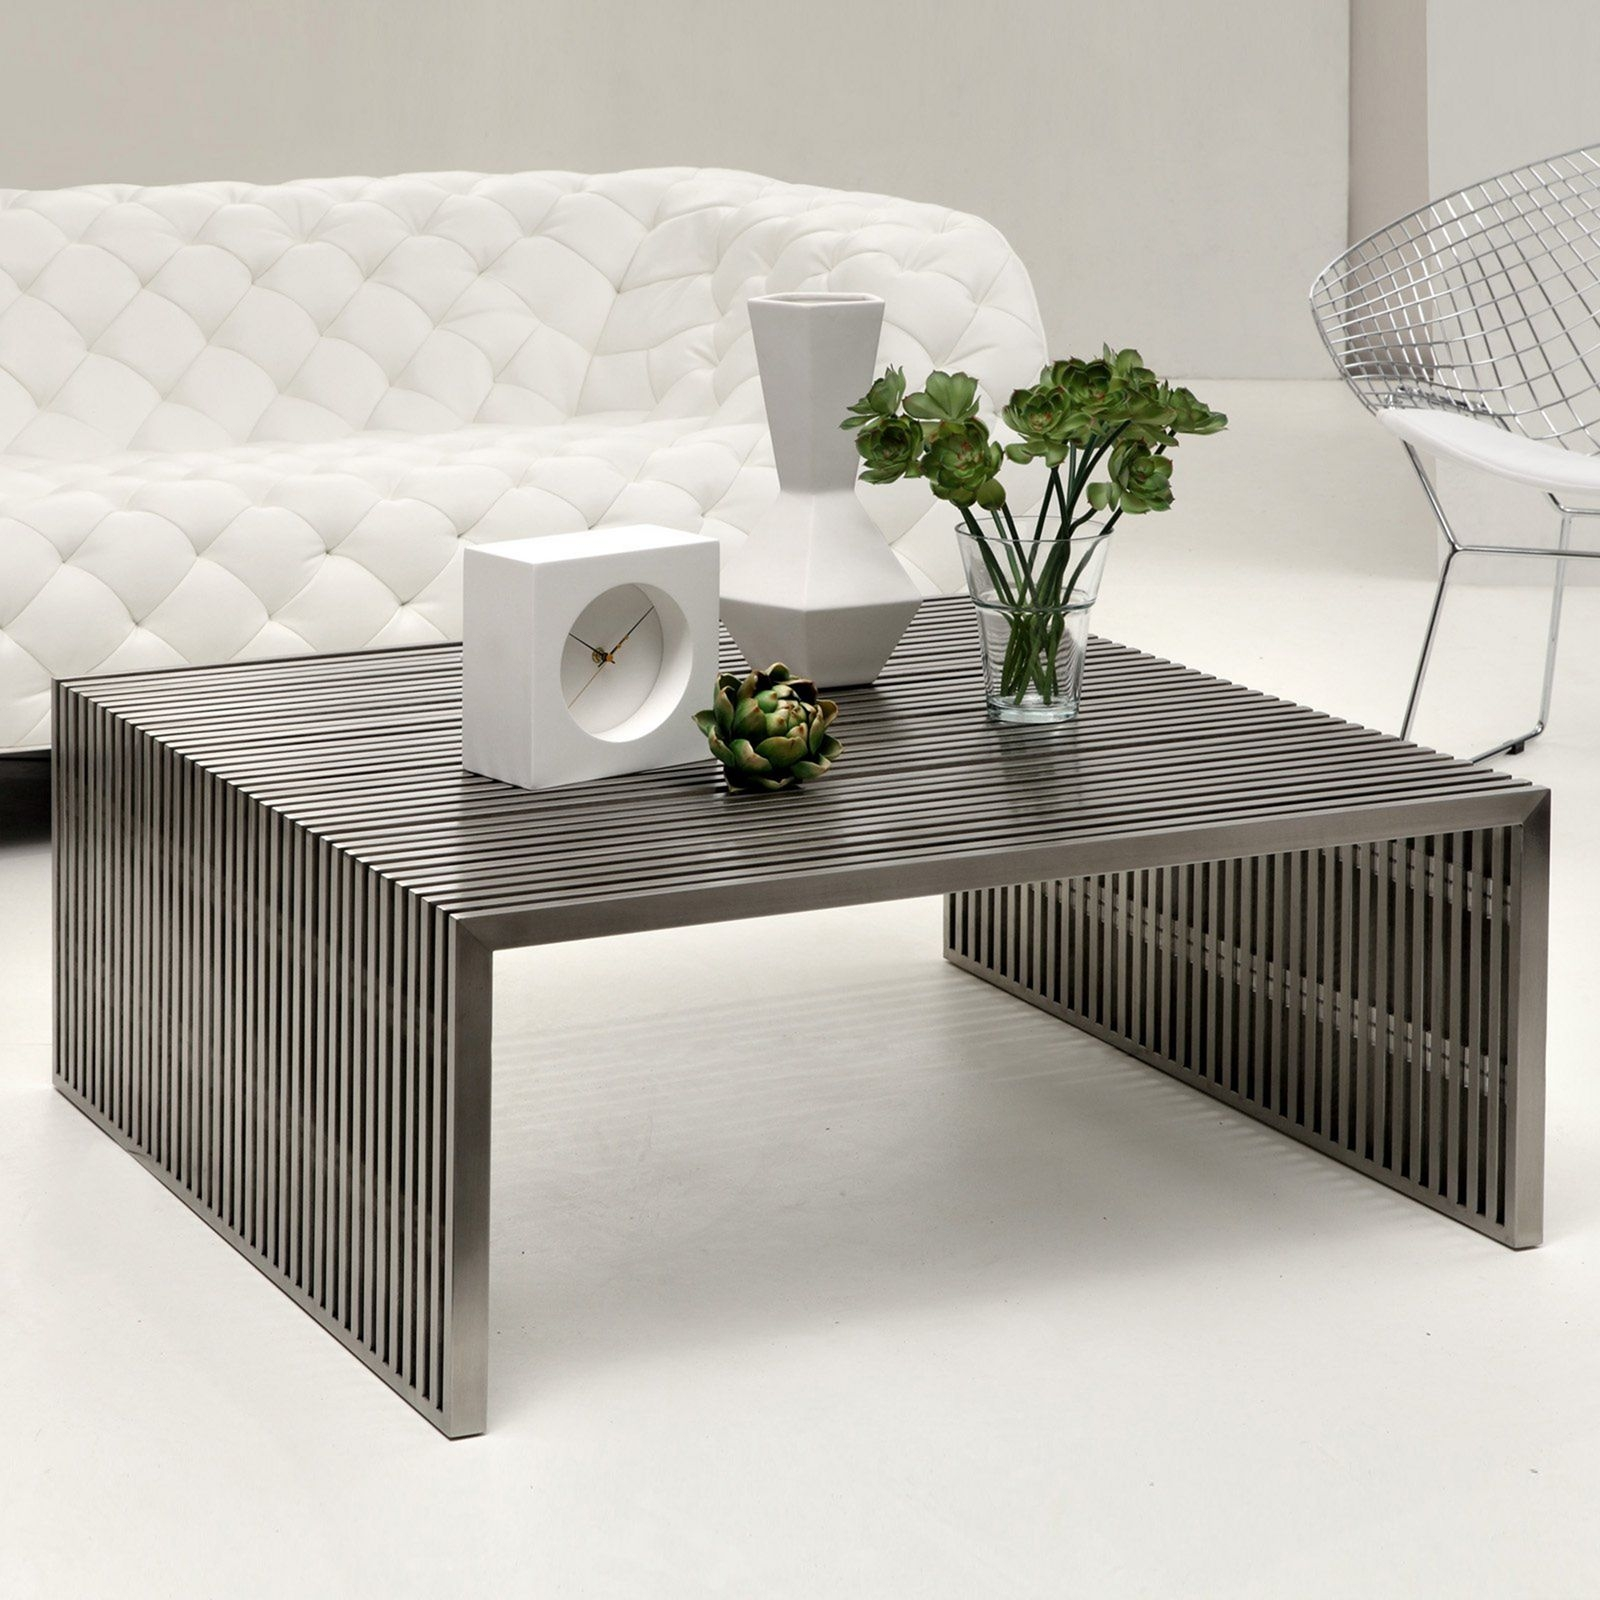 Gentil Mod Made Cubellis Stainless Steel Square Coffee Table